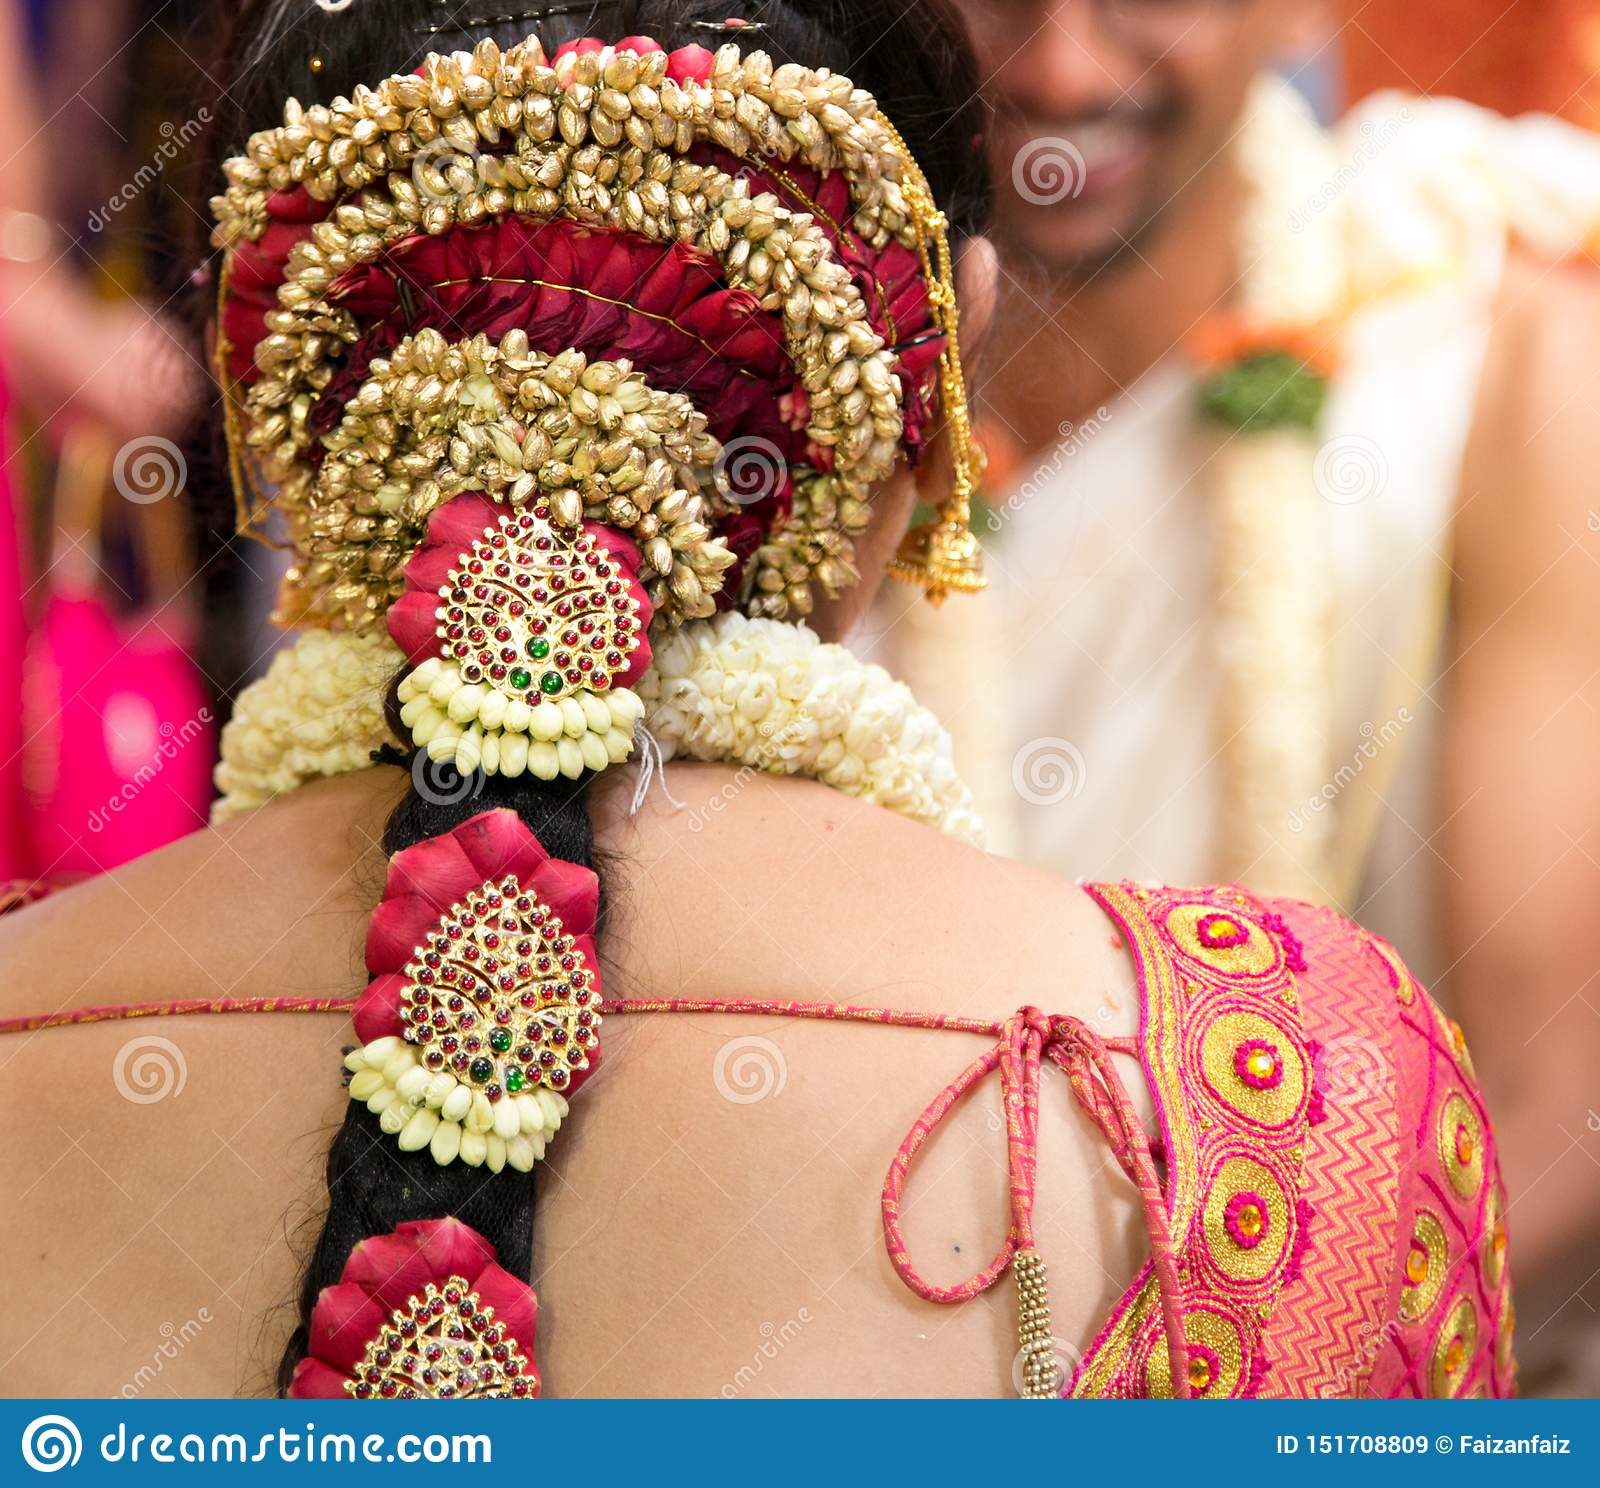 South Indian Wedding Jewelry And Ornaments Editorial Stock Image